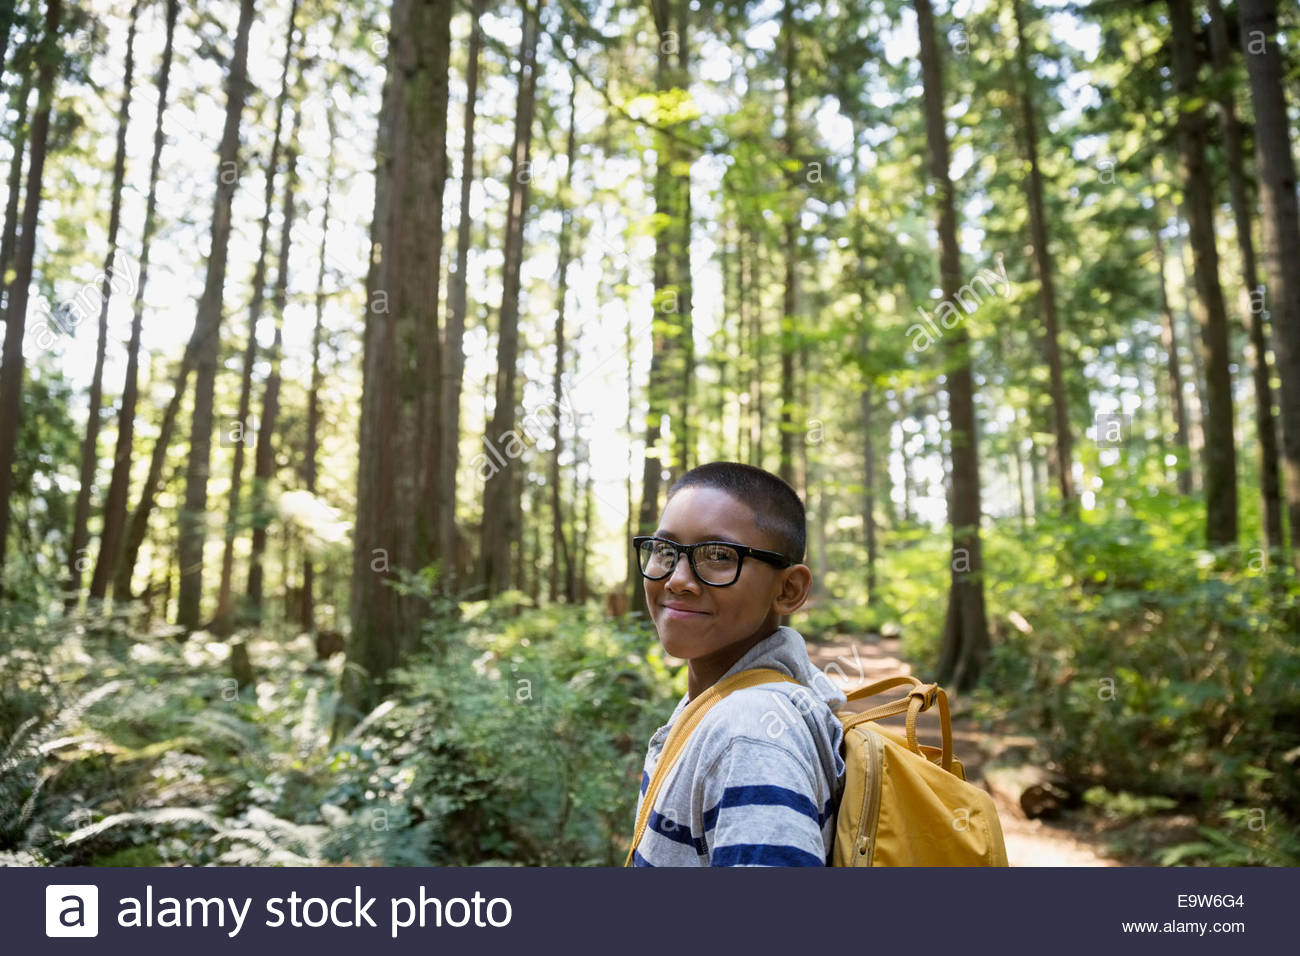 Portrait of smiling boy with backpack in woods - Stock Image